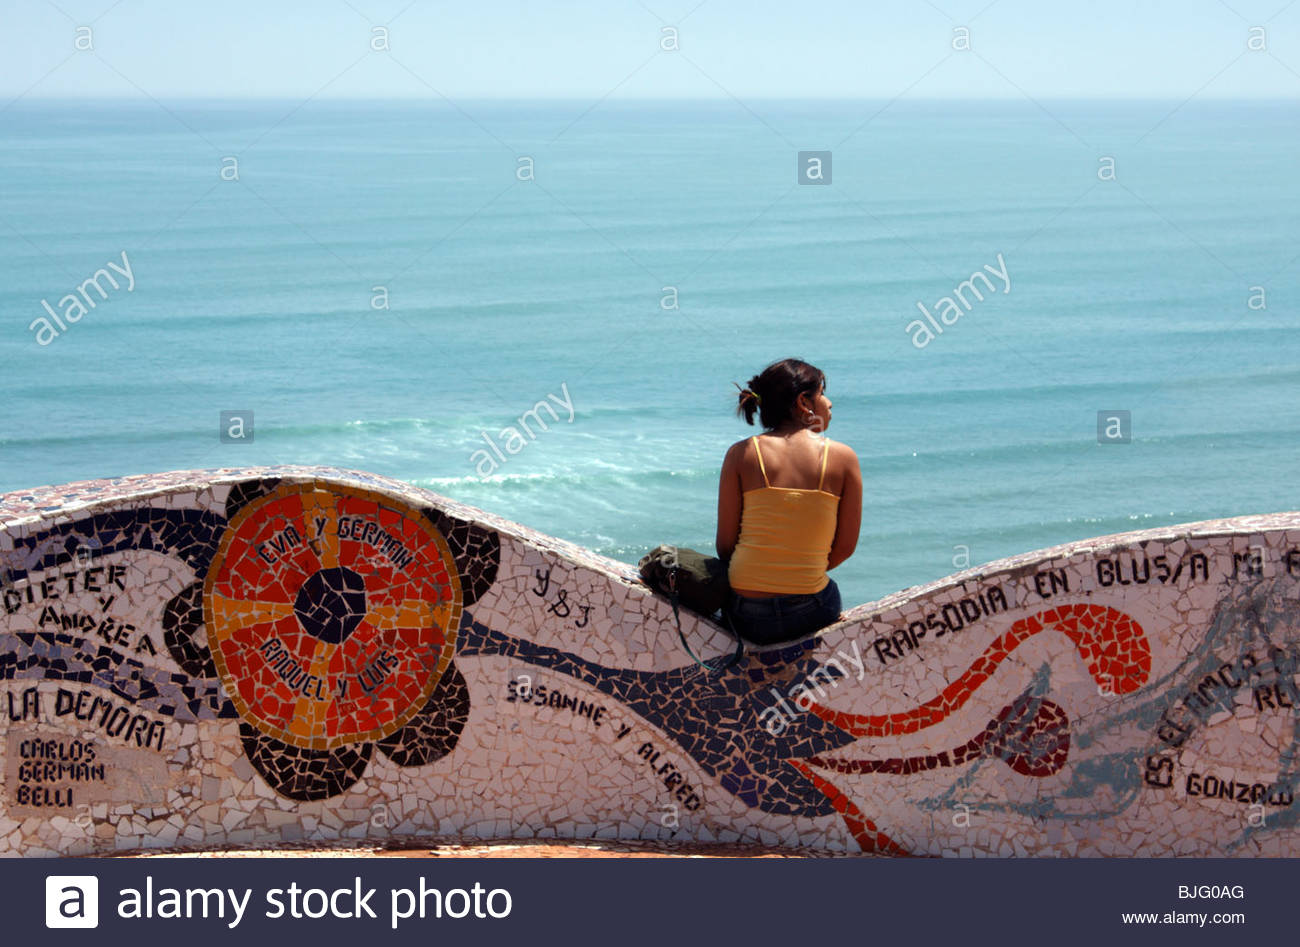 Love-theme mosaic bench at Parque del Amor at Miraflores clifftops, overlooking the Pacific ocean; Lima, Peru - Stock Image